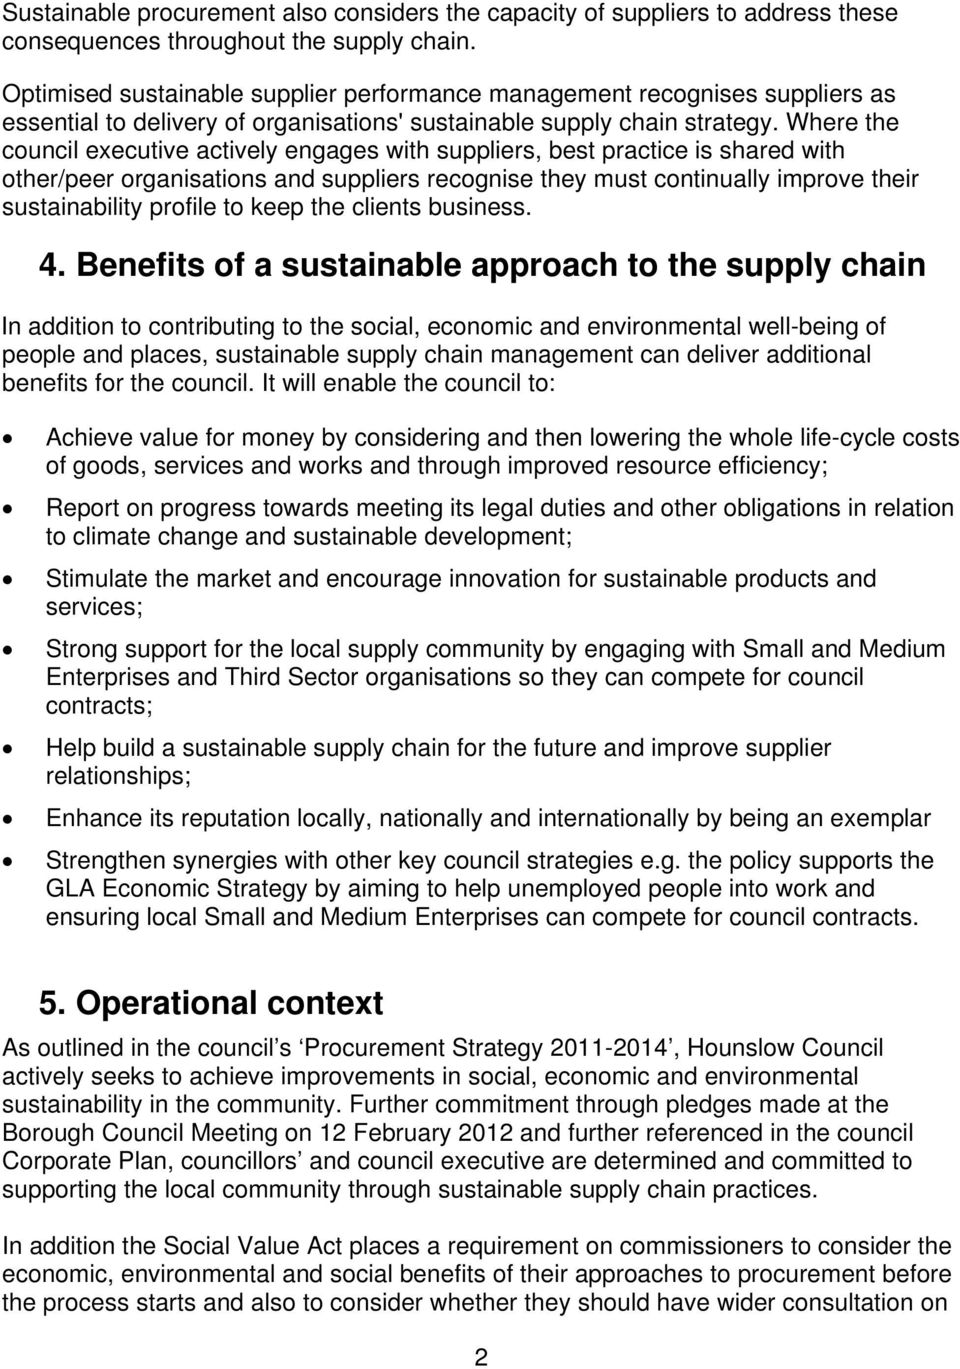 Where the council executive actively engages with suppliers, best practice is shared with other/peer organisations and suppliers recognise they must continually improve their sustainability profile